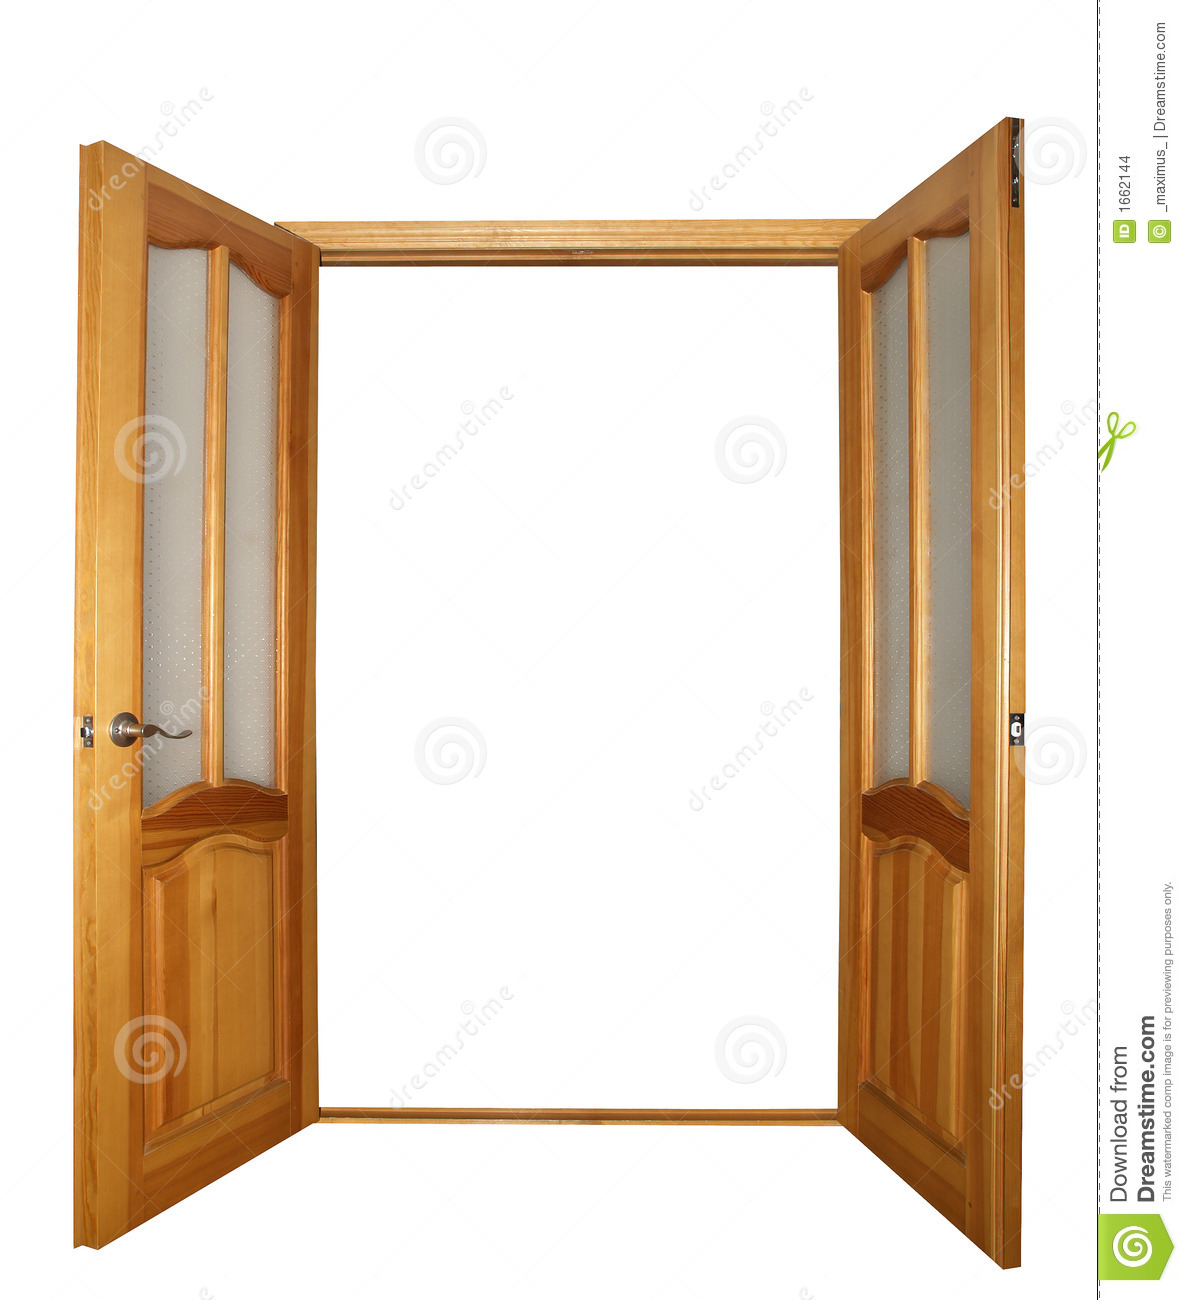 Clipart Doorway.